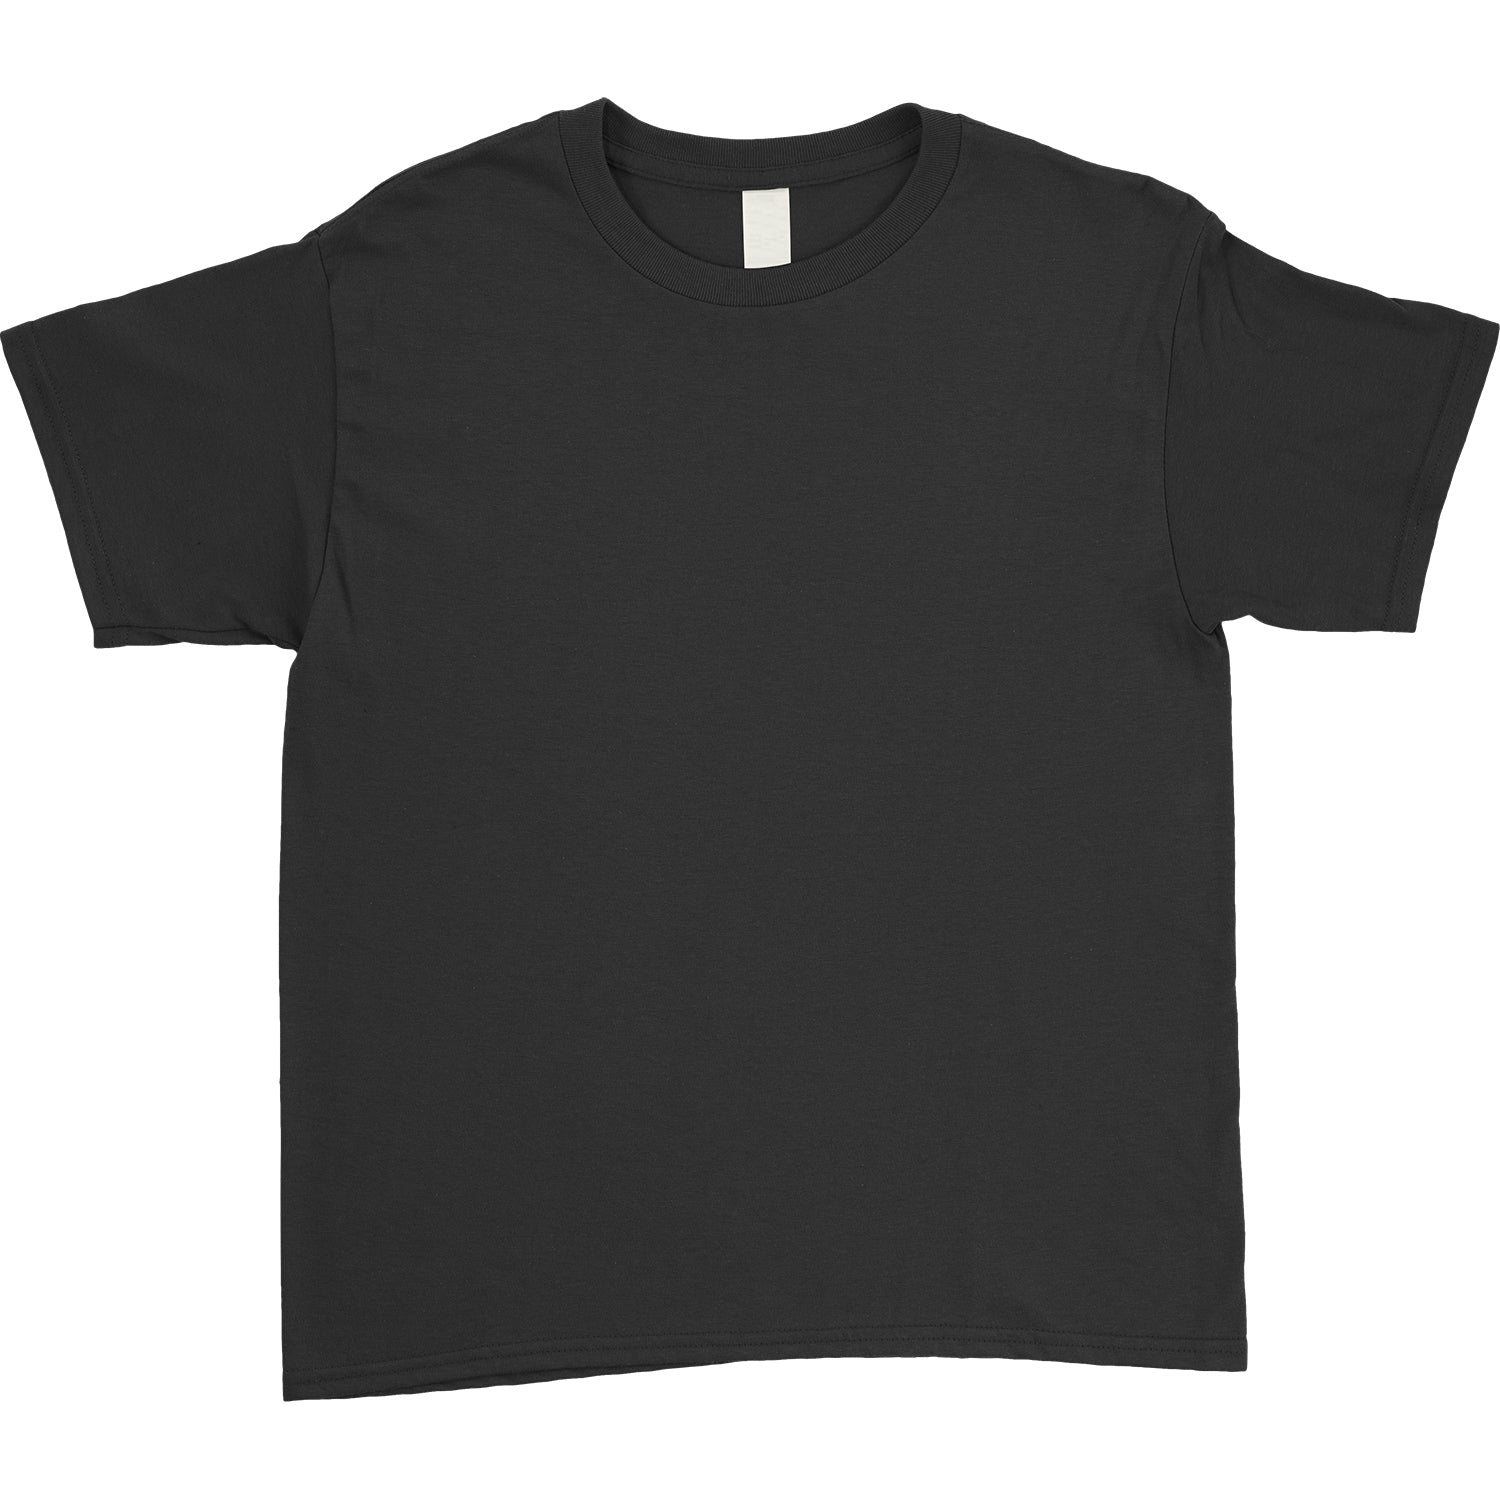 Youth Short Sleeve Tee - Black